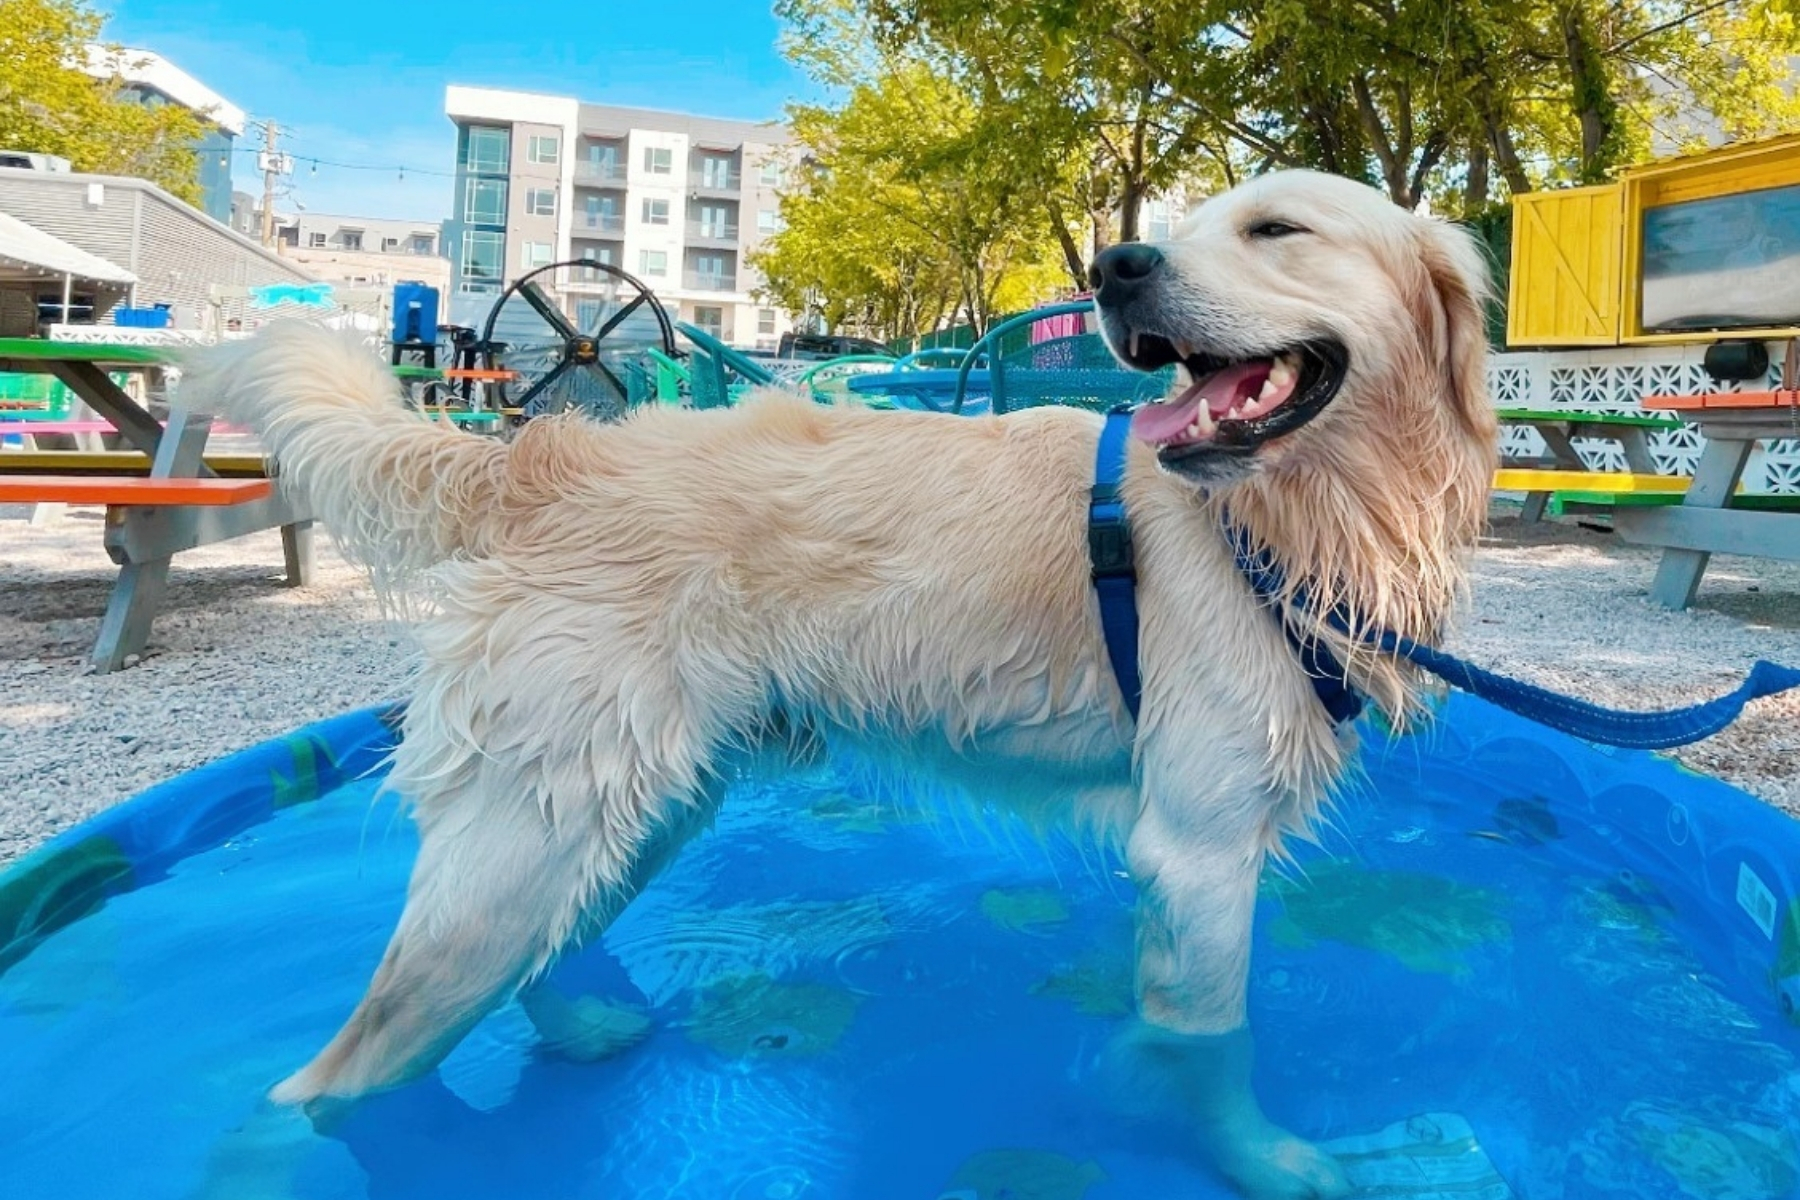 Golden retriever in a mini pool outside at Toller Patio